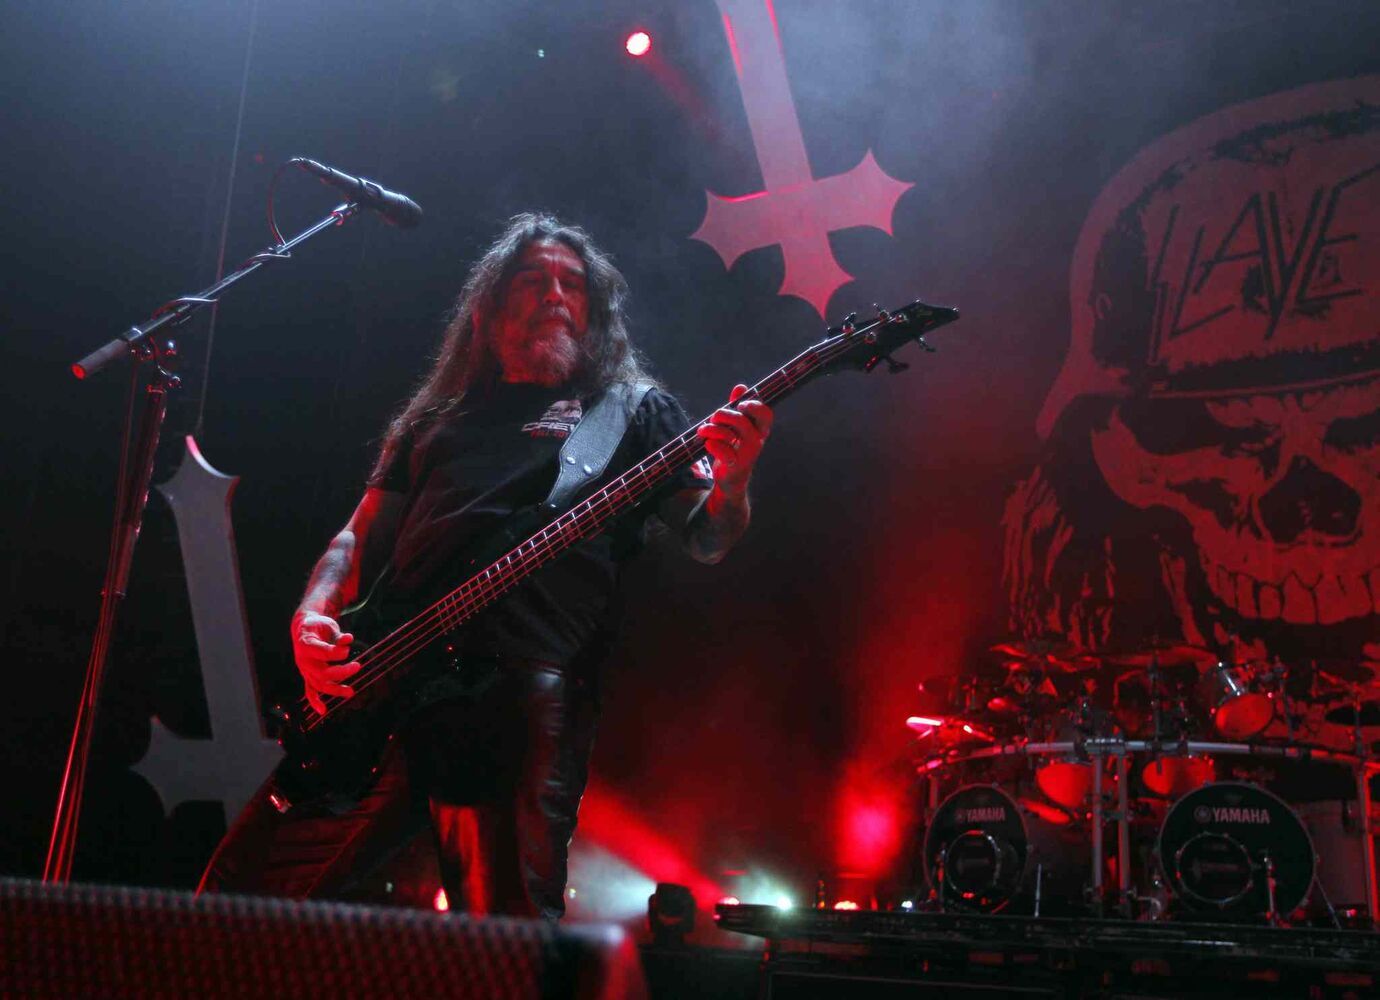 Vocalist/bassist Tom Araya delivers a riff. (BORIS MINKEVICH / WINNIPEG FREE PRESS)